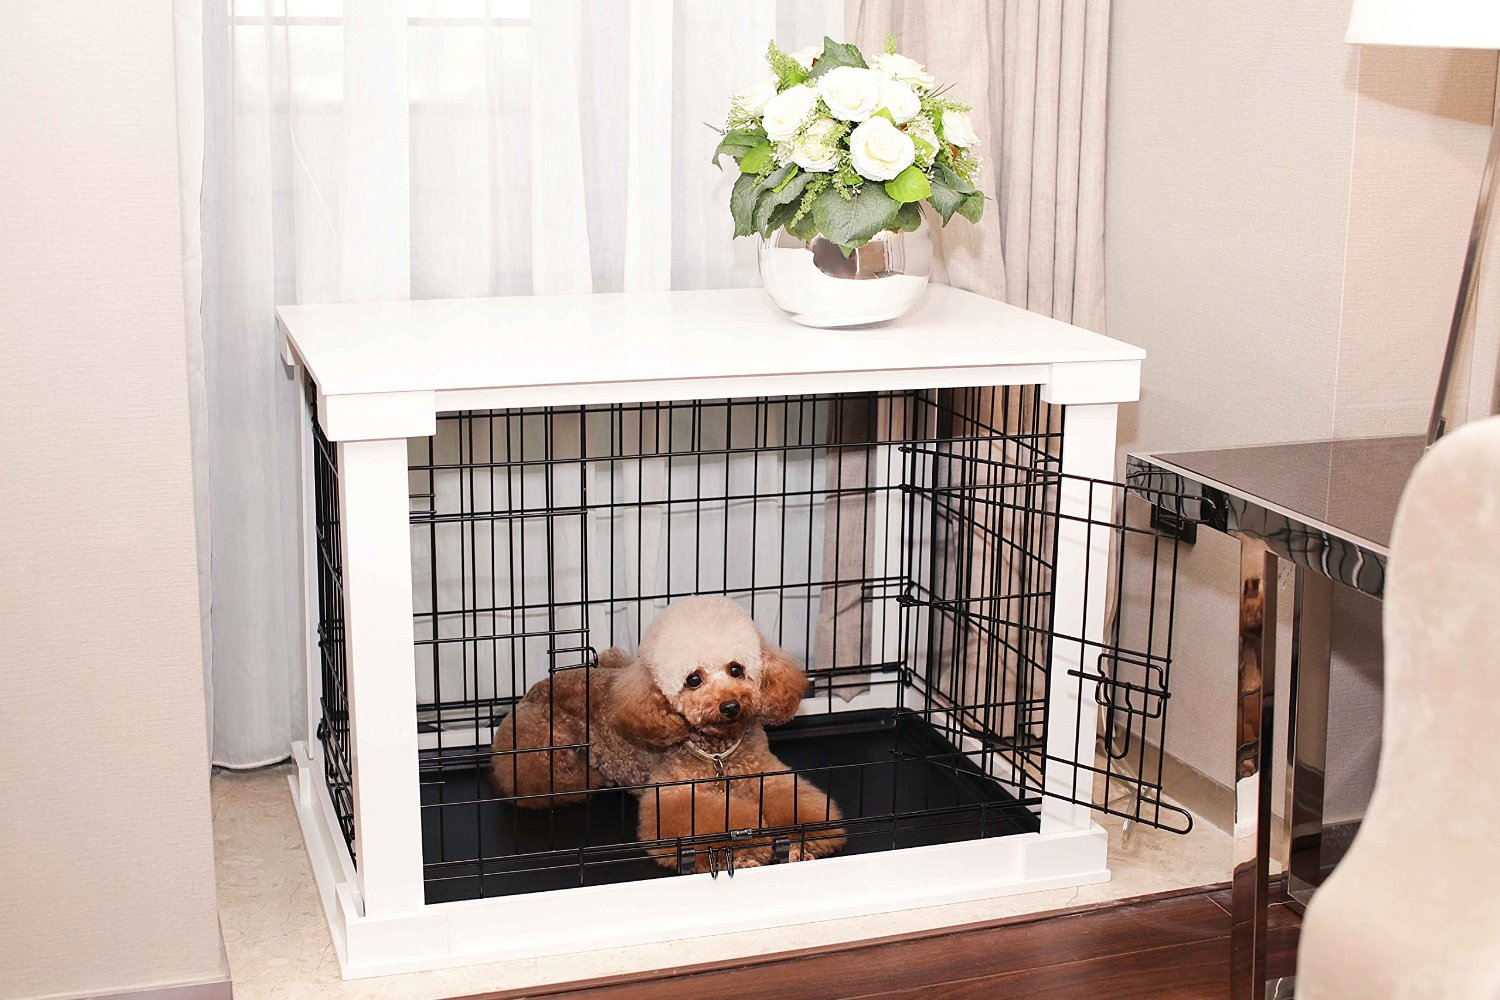 Charmant White Wood Dog Crate U0026 Cover Looks Like Furniture: End/Side Table Or  Nightstand